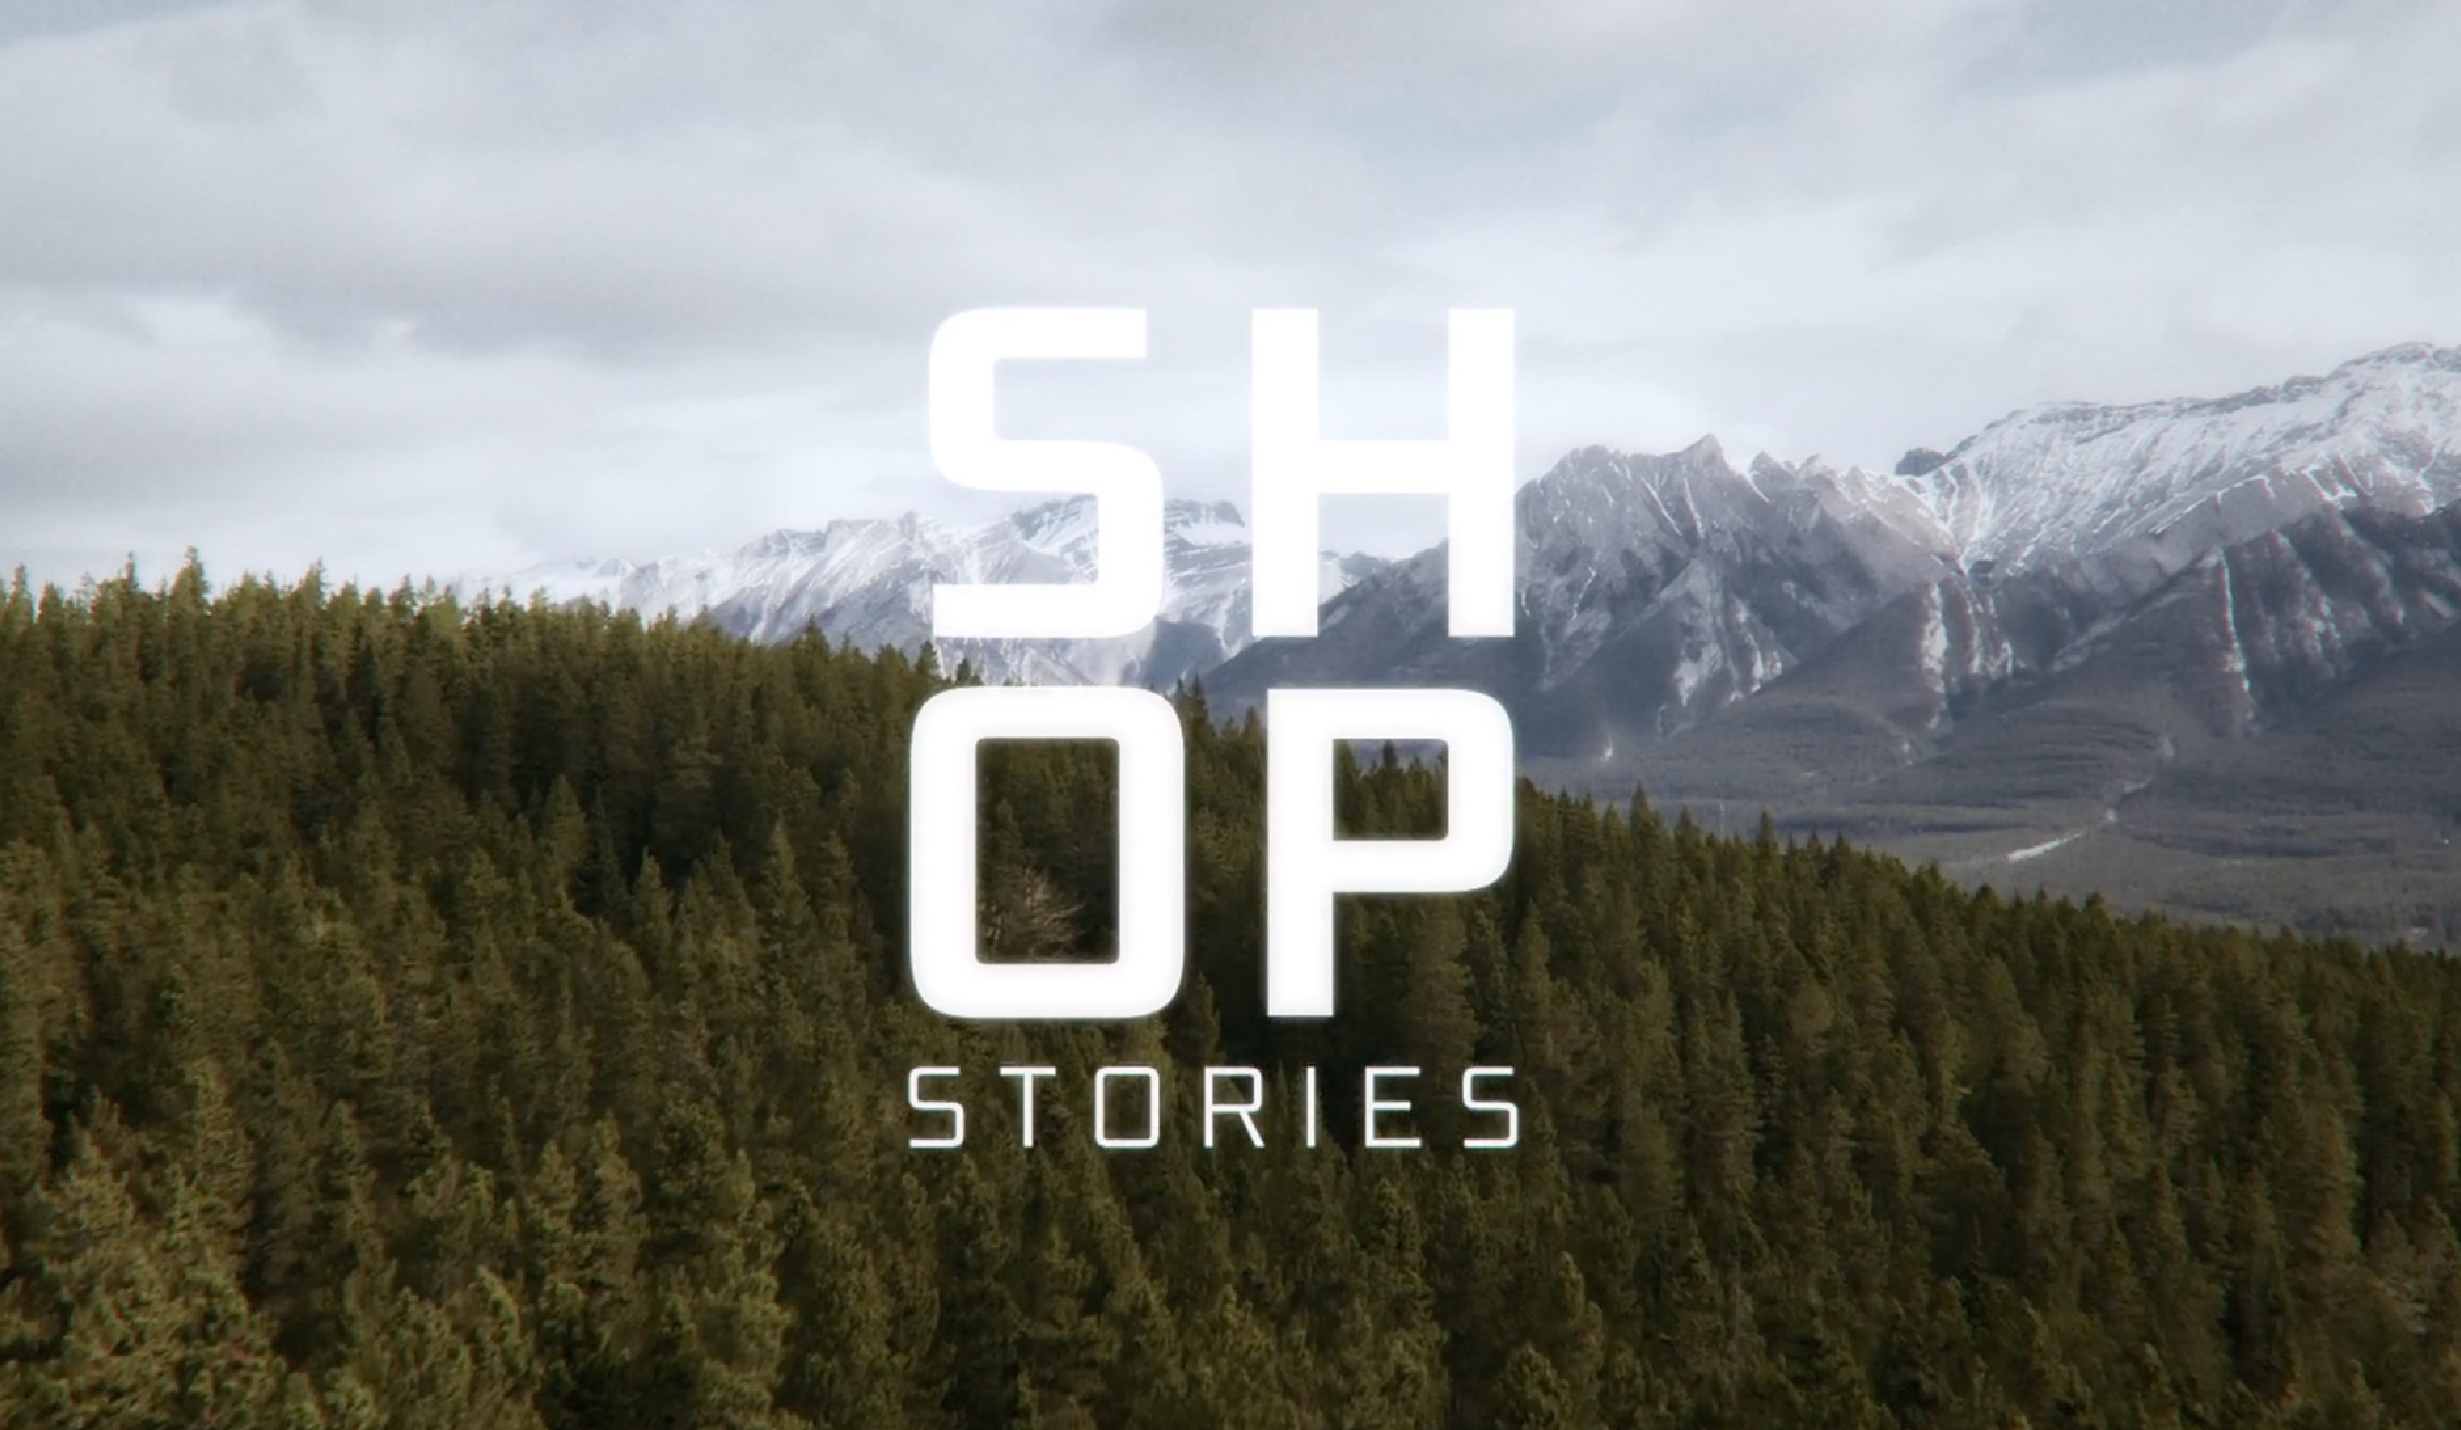 Blizzard Skis — Shop Stories